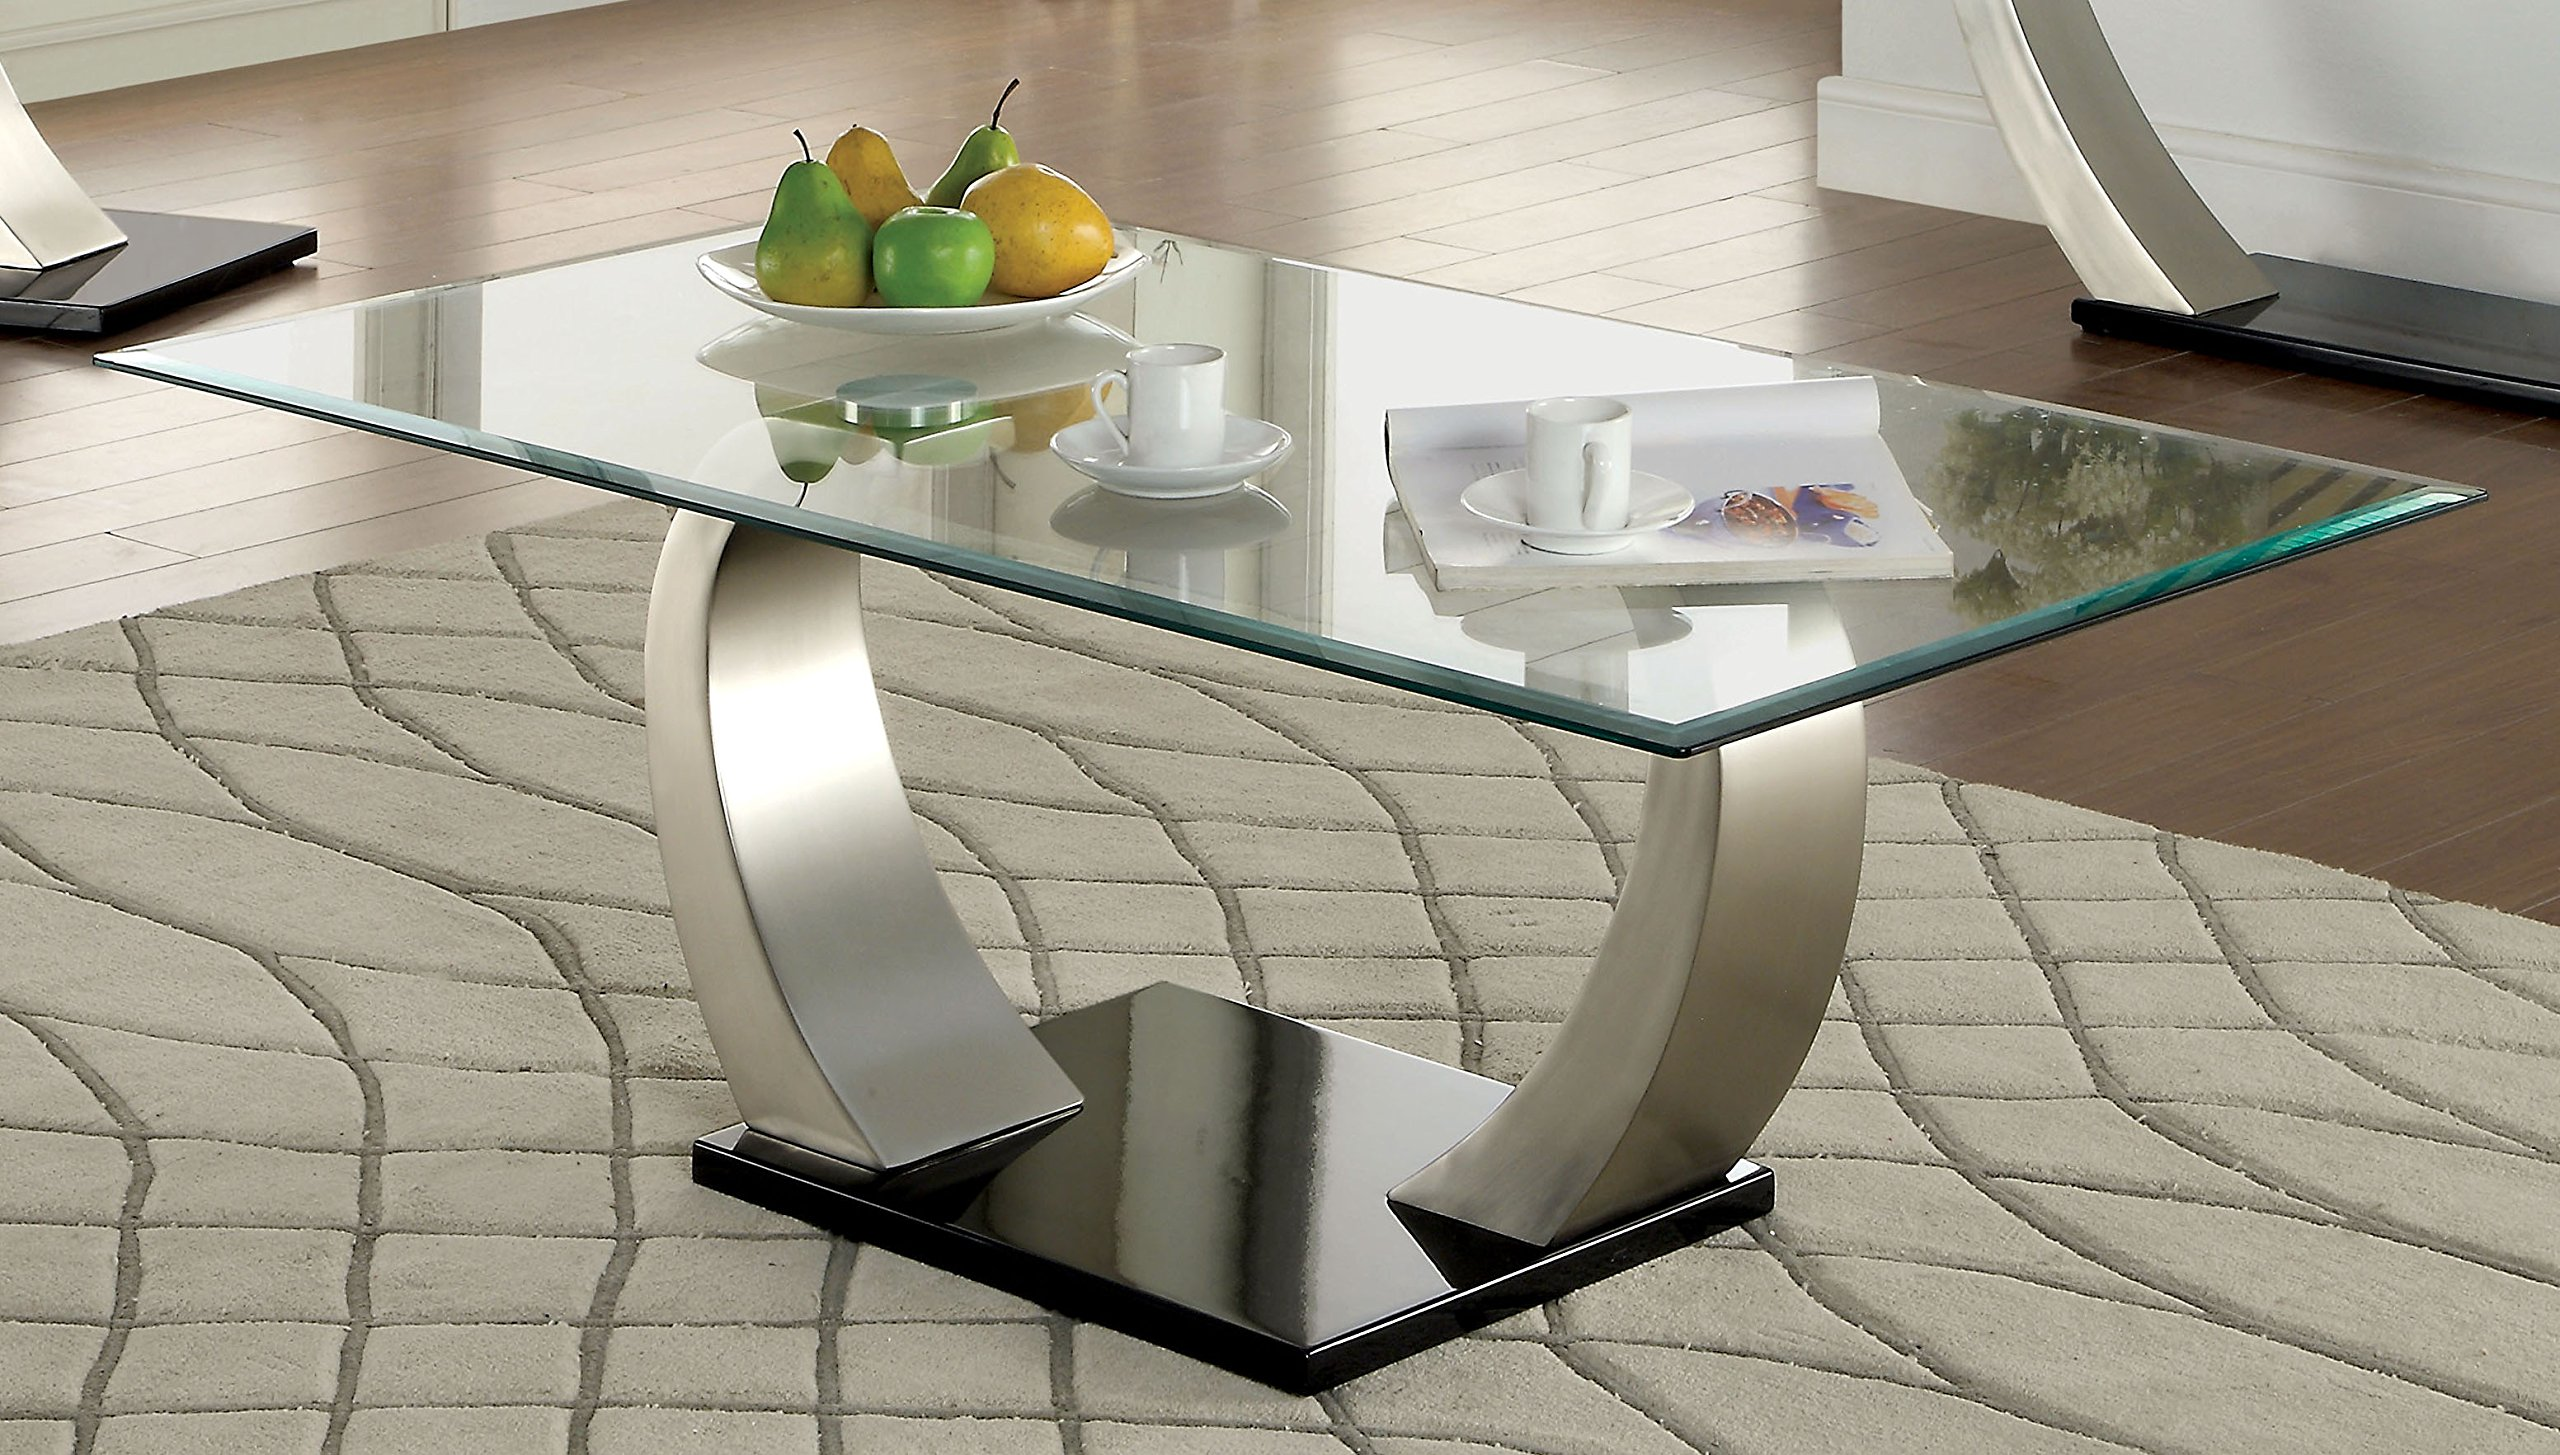 Furniture of America Kassius Modern Coffee Table, Metallic Finish by Furniture of America